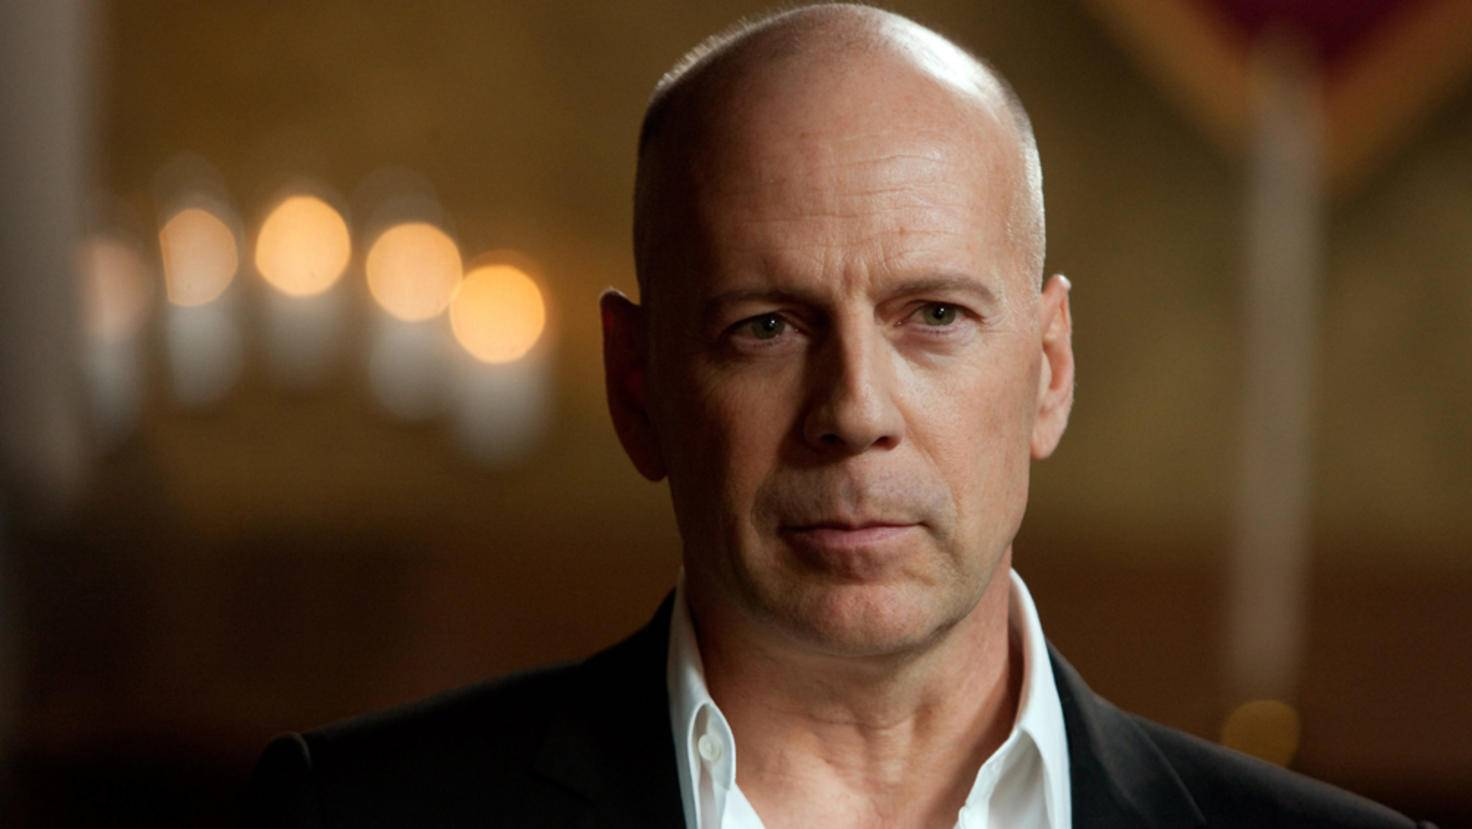 Bruce Willis-picture alliance-Everett Collection-92595336